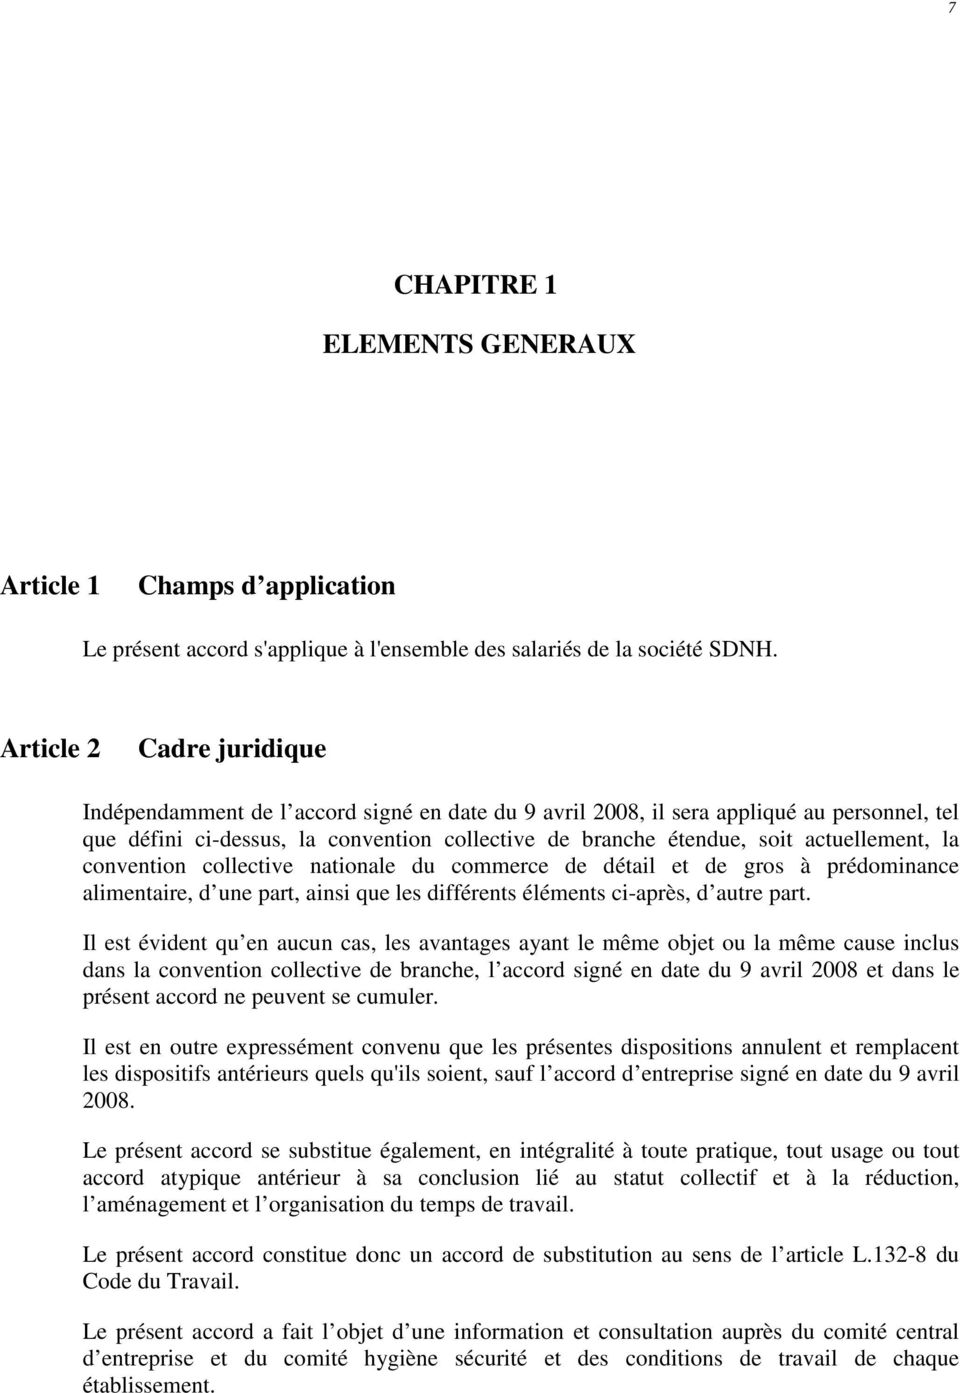 actuellement, la convention collective nationale du commerce de détail et de gros à prédominance alimentaire, d une part, ainsi que les différents éléments ci-après, d autre part.